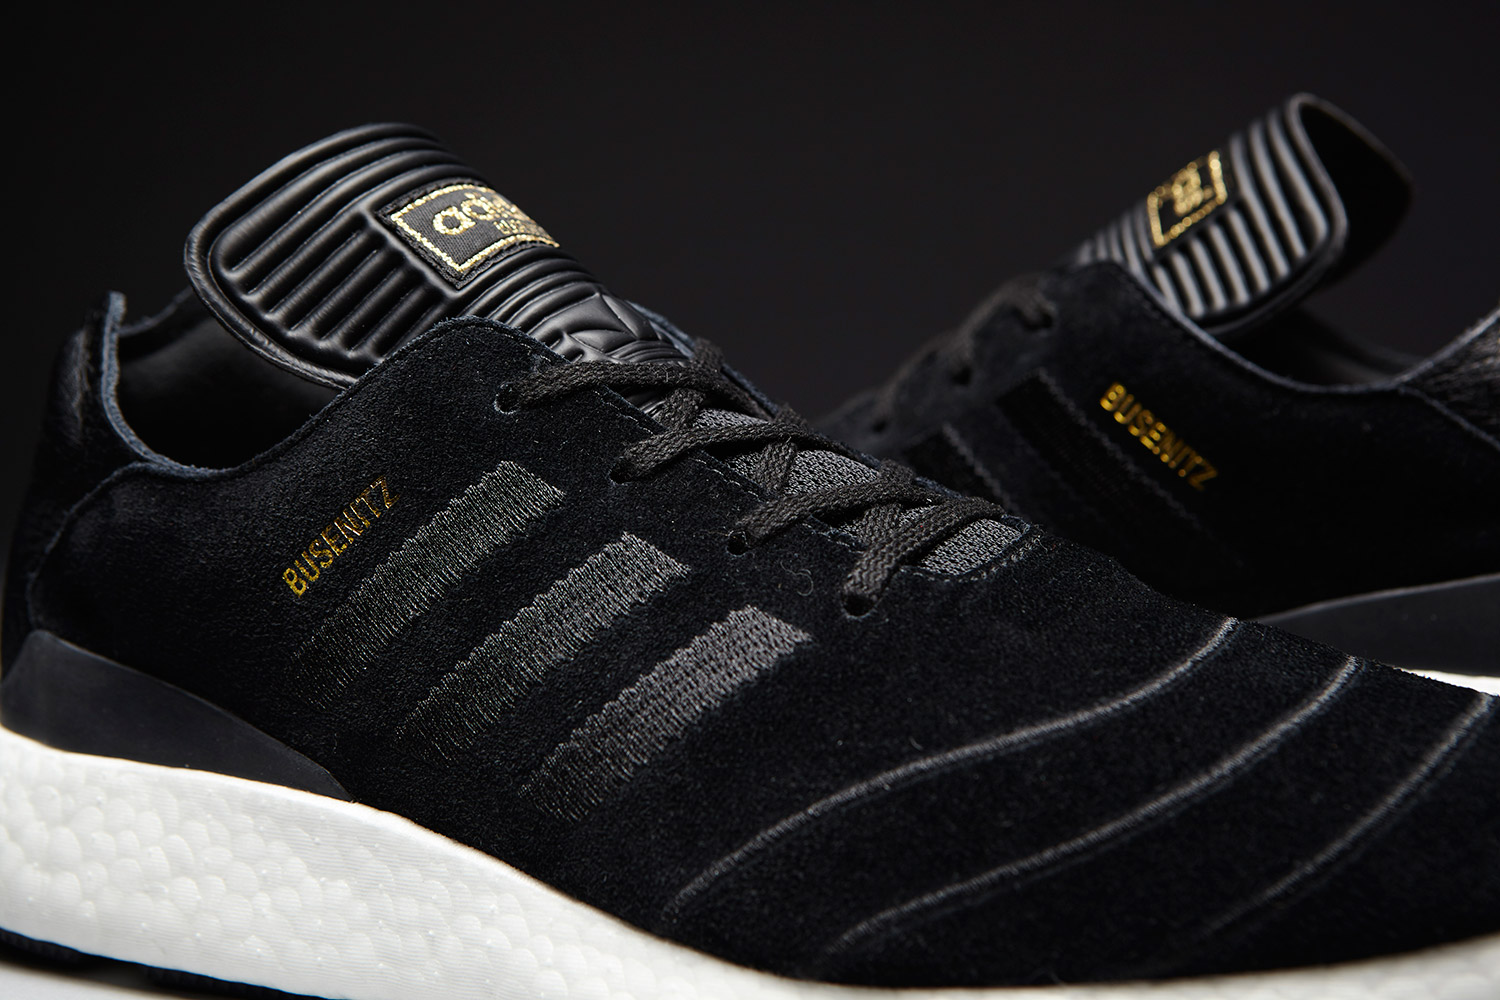 Adidas Busenitz Pure Boost Pro